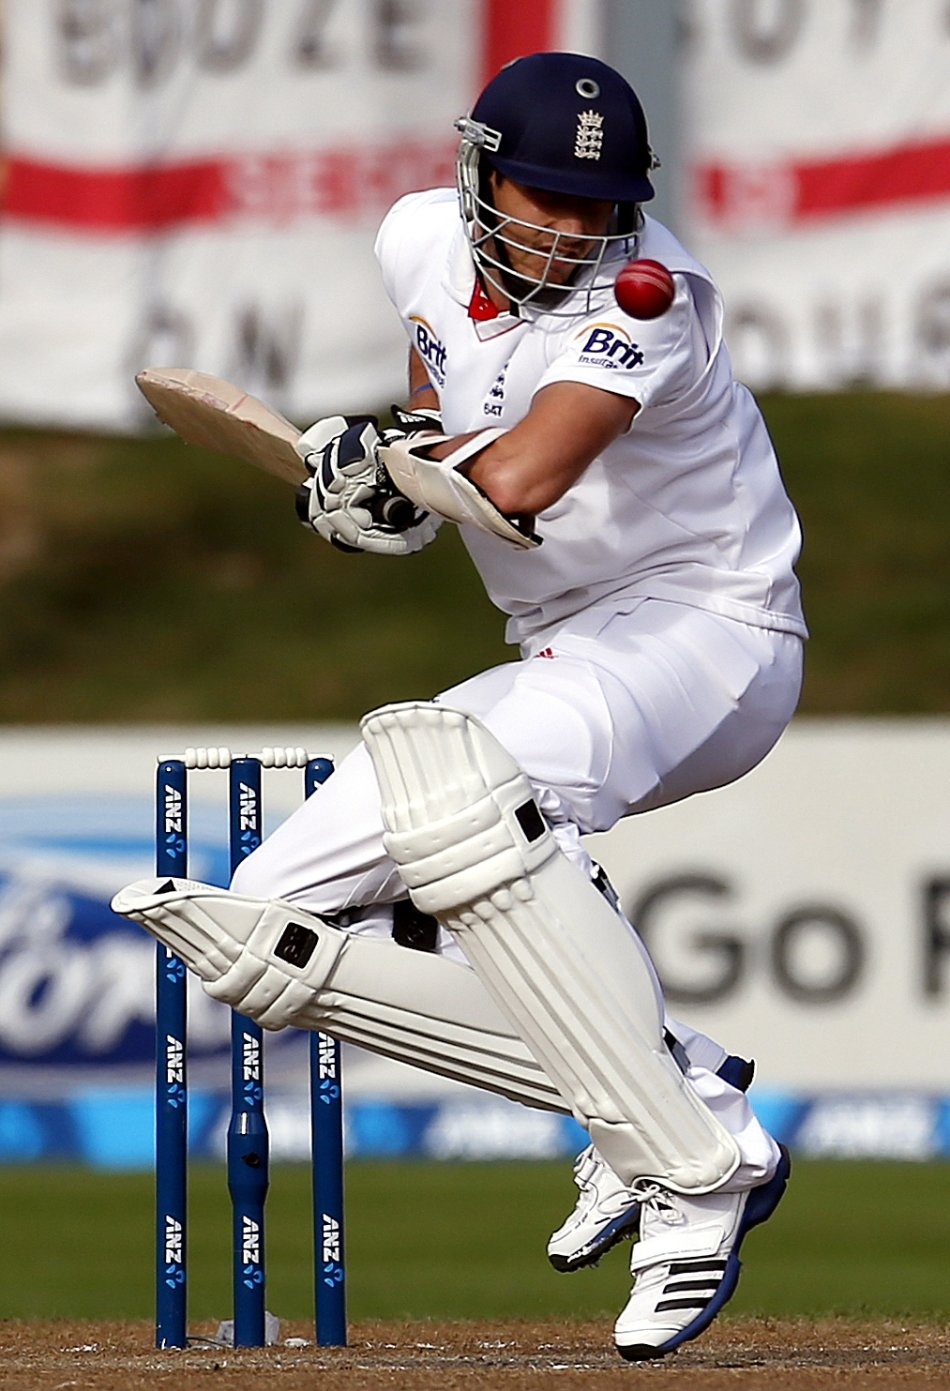 England's Finn tries to avoid a bouncer bowled by New Zealand's Southee during the fifth day of the first test at the University Oval in Dunedin